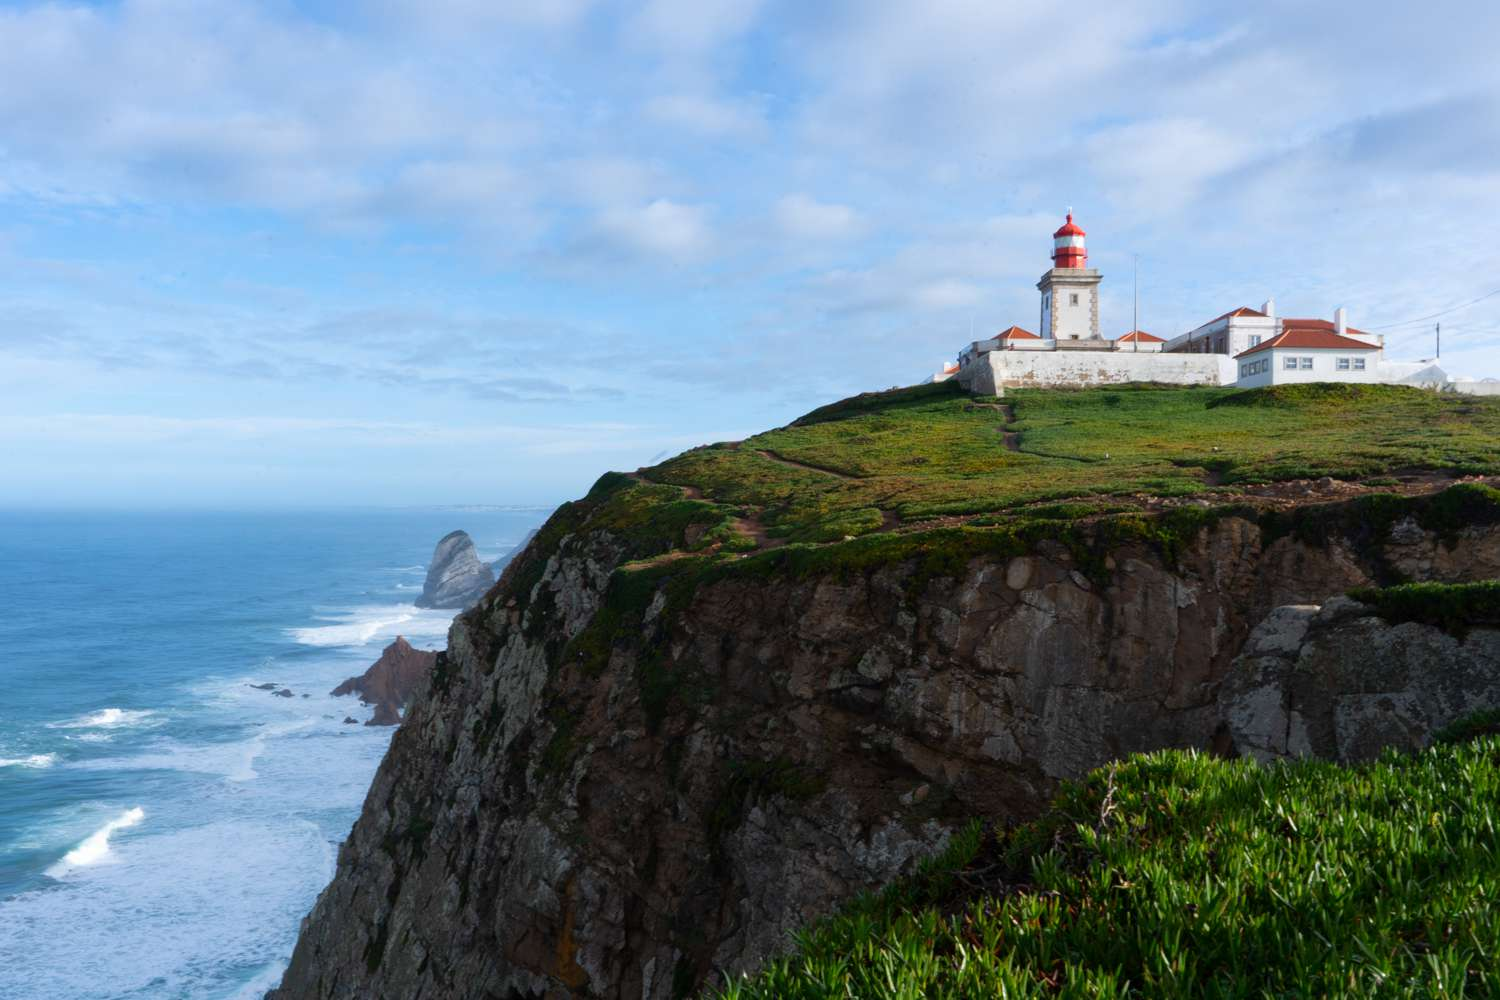 Wide shot of the lighthouse at Cape Roca